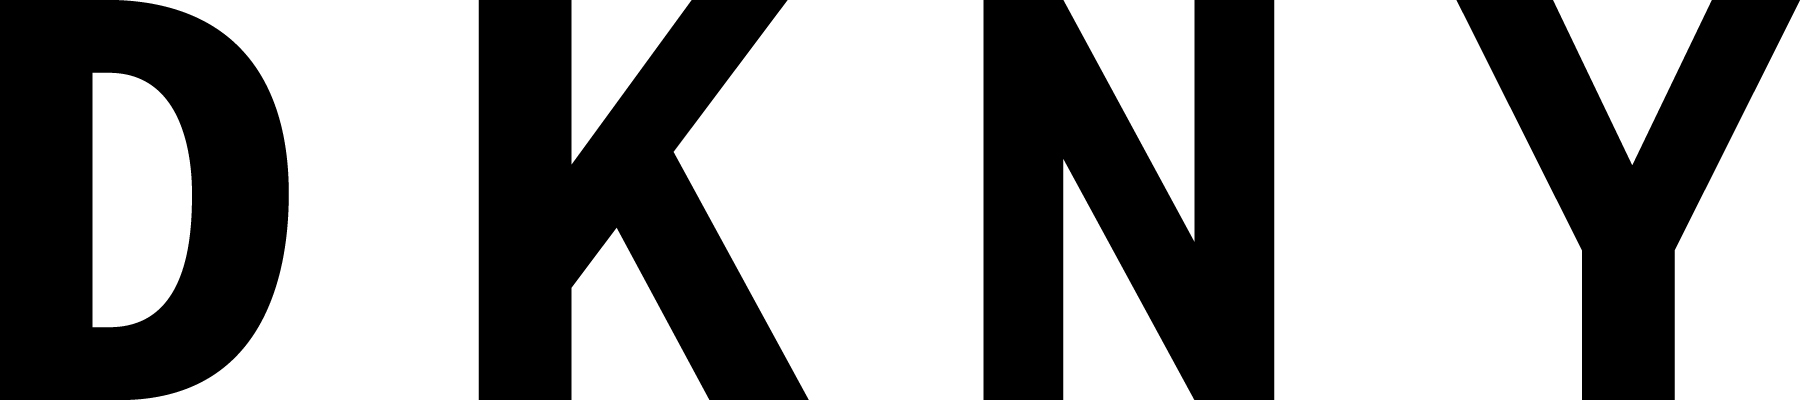 DKNY Coupon: Free shipping orders $50+.